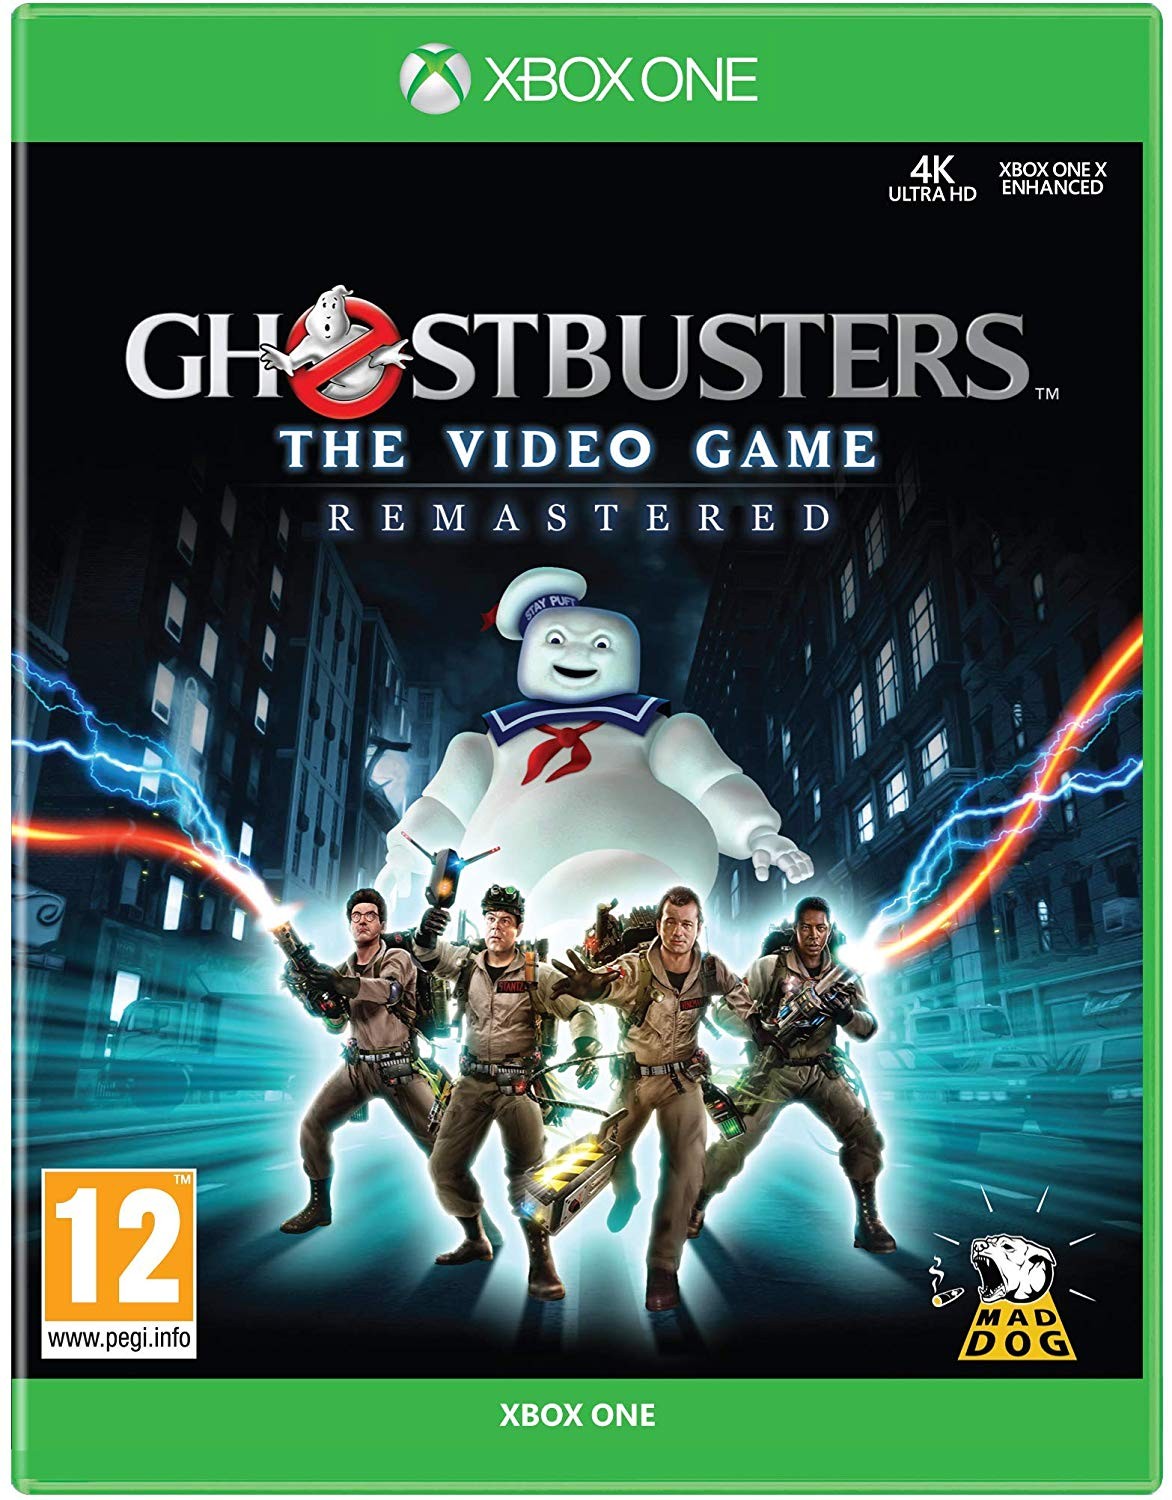 Joc Ghostbusters: The Video Game - Remastered pentru Xbox One 0